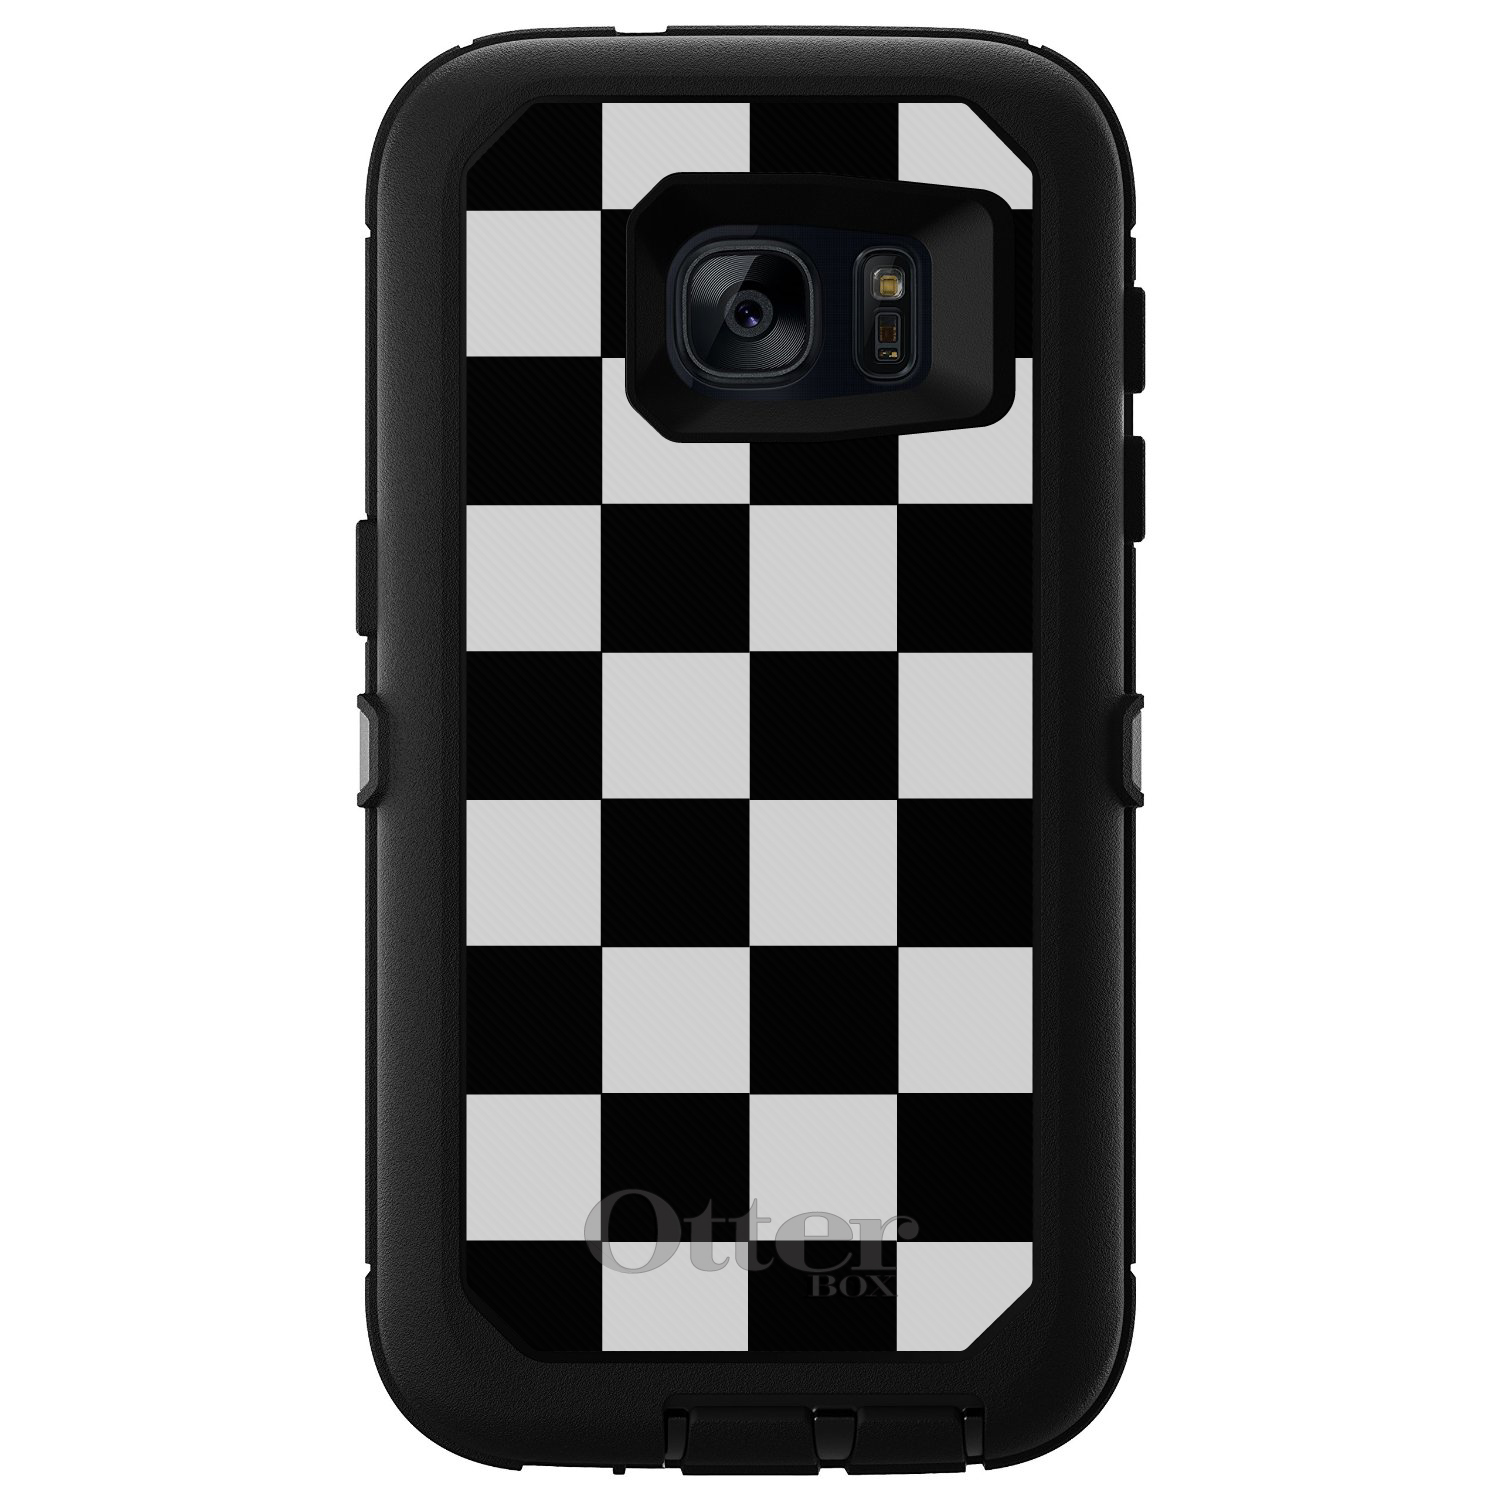 DistinctInk™ Custom Black OtterBox Defender Series Case for Samsung Galaxy S7 - Black White Checkered Flag Geometric